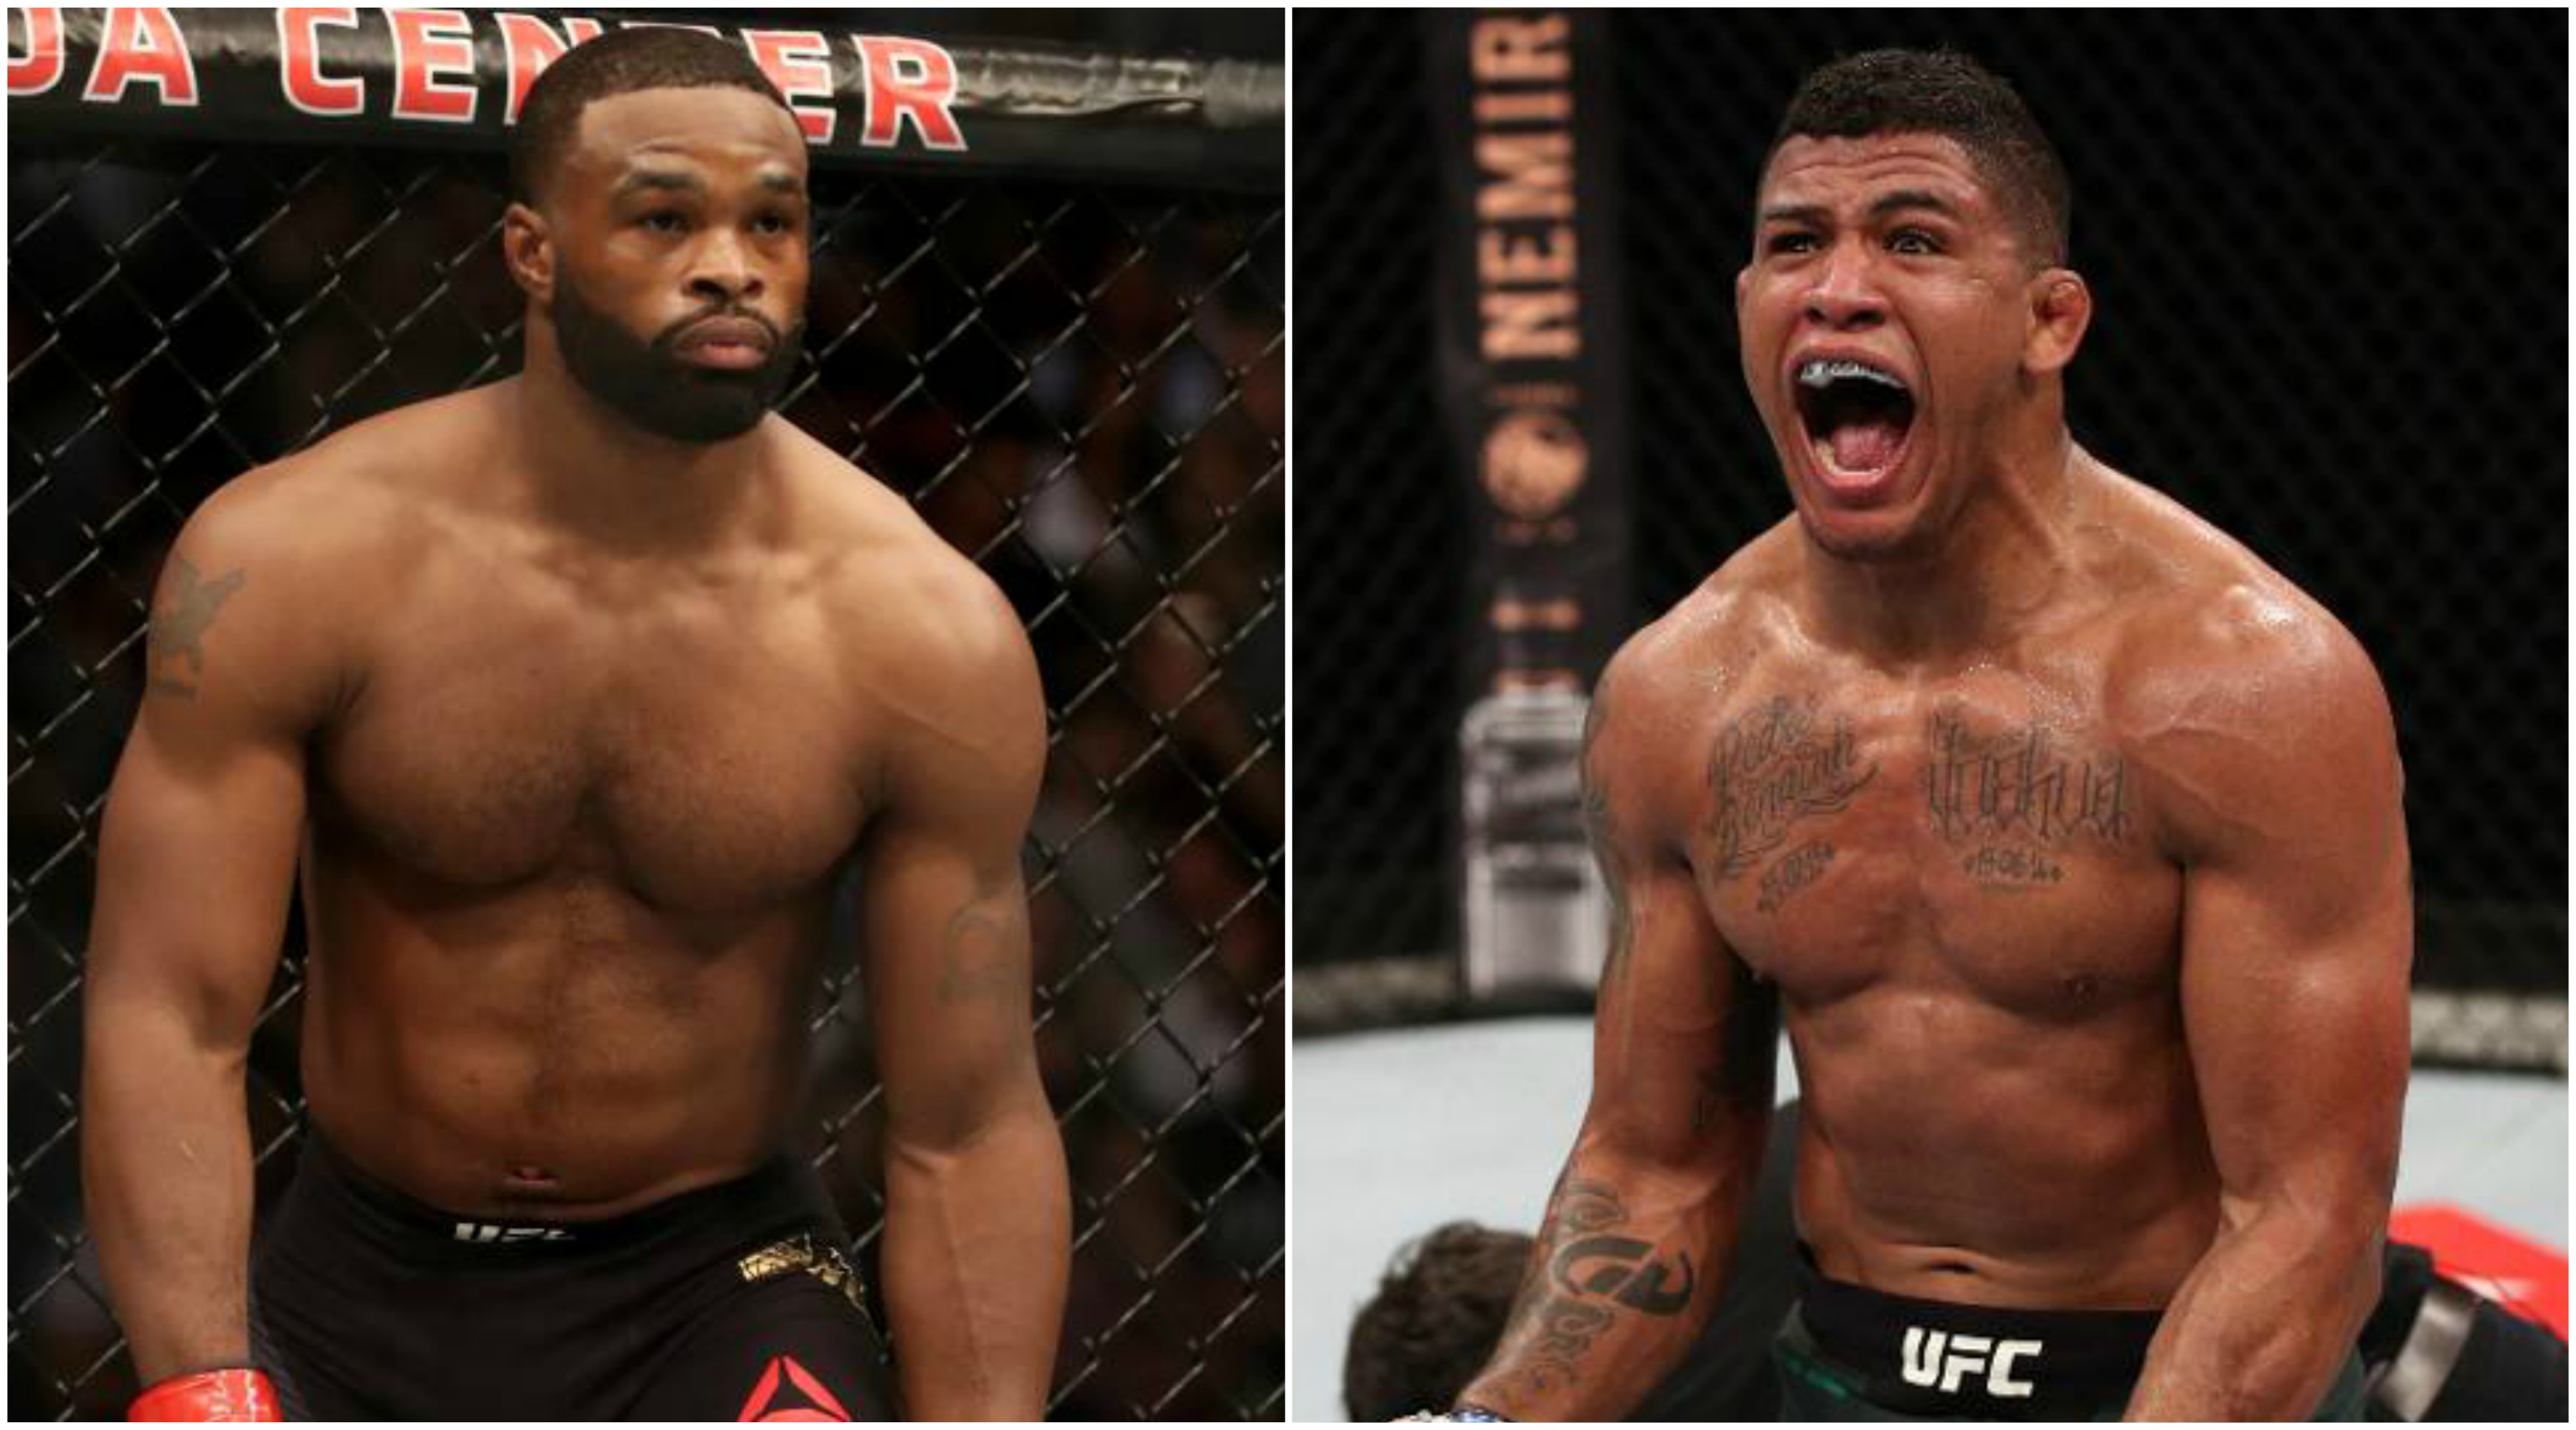 UFC News: Gilbert Burns blasts 'freaking liar' Tyron Woodley, says he would finish him in a fight - Gilbert Burns